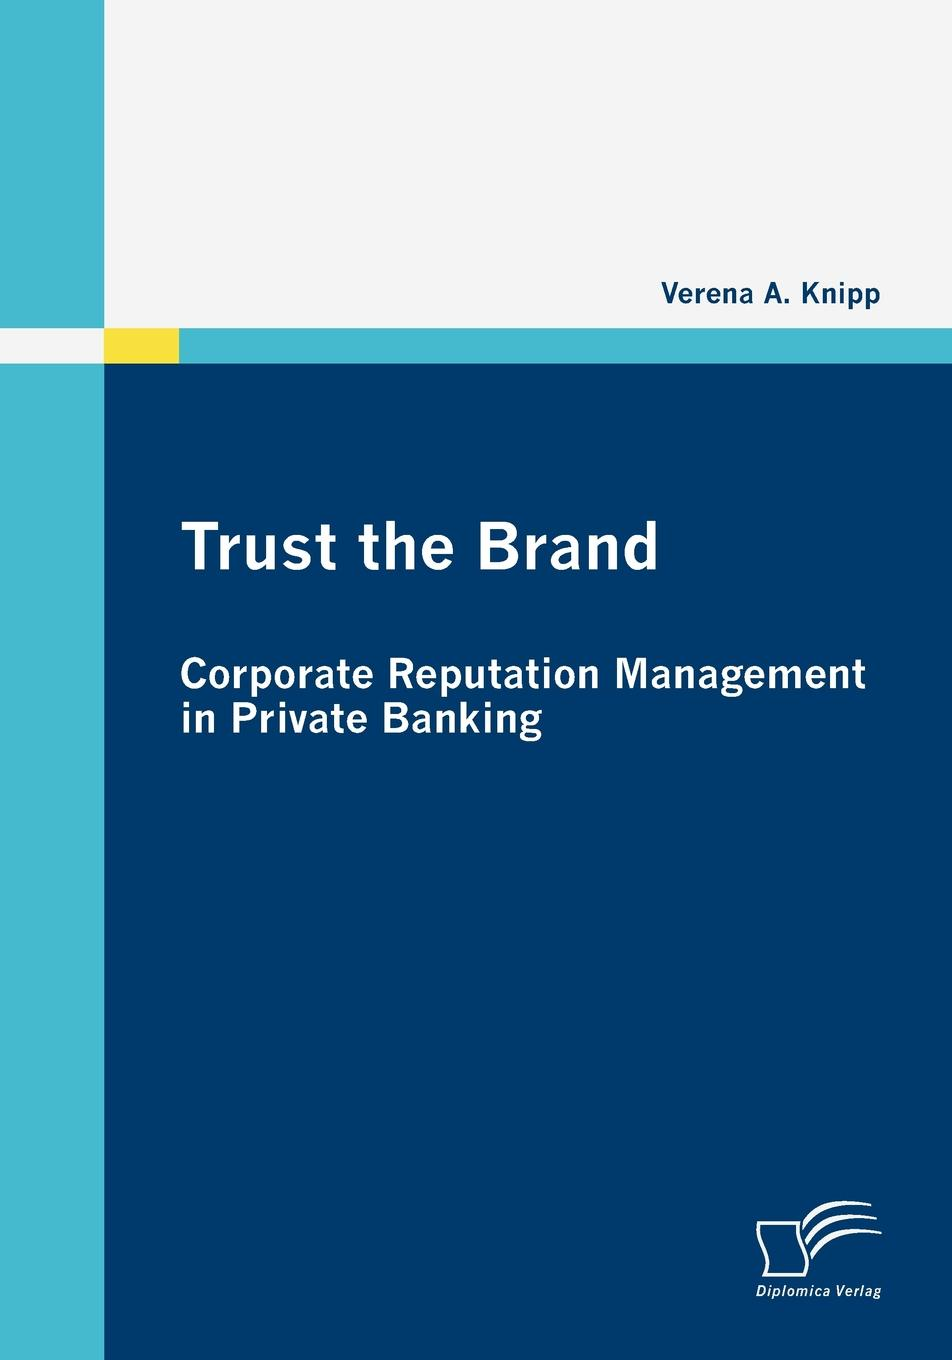 Verena A. Knipp Trust the Brand - Corporate Reputation Management in Private Banking цена